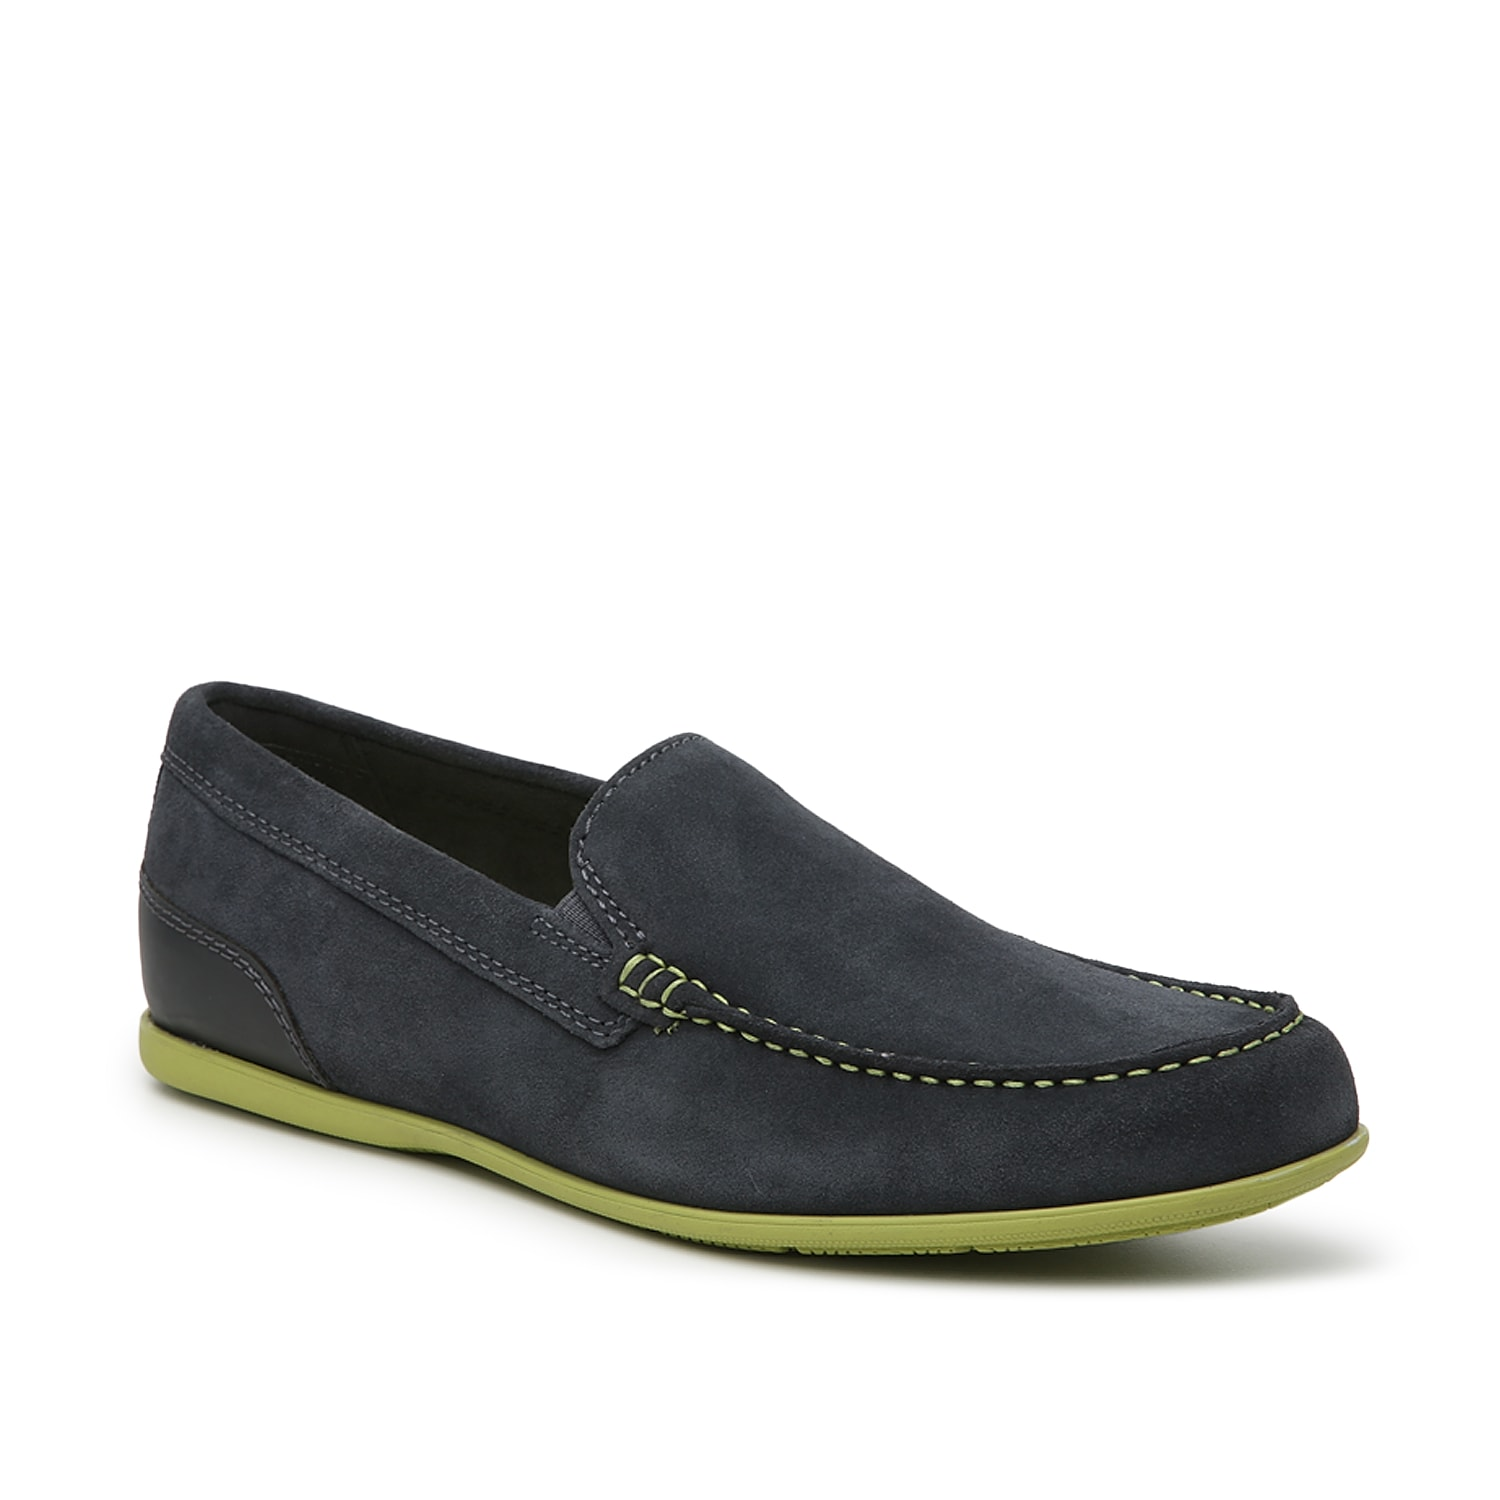 Sleek and modern, the Malcolm Venetian slip-on from Rockport cuts a cool profile with an ultra-slim sole and streamlined design. Treated suede resists damage caused by water staining.